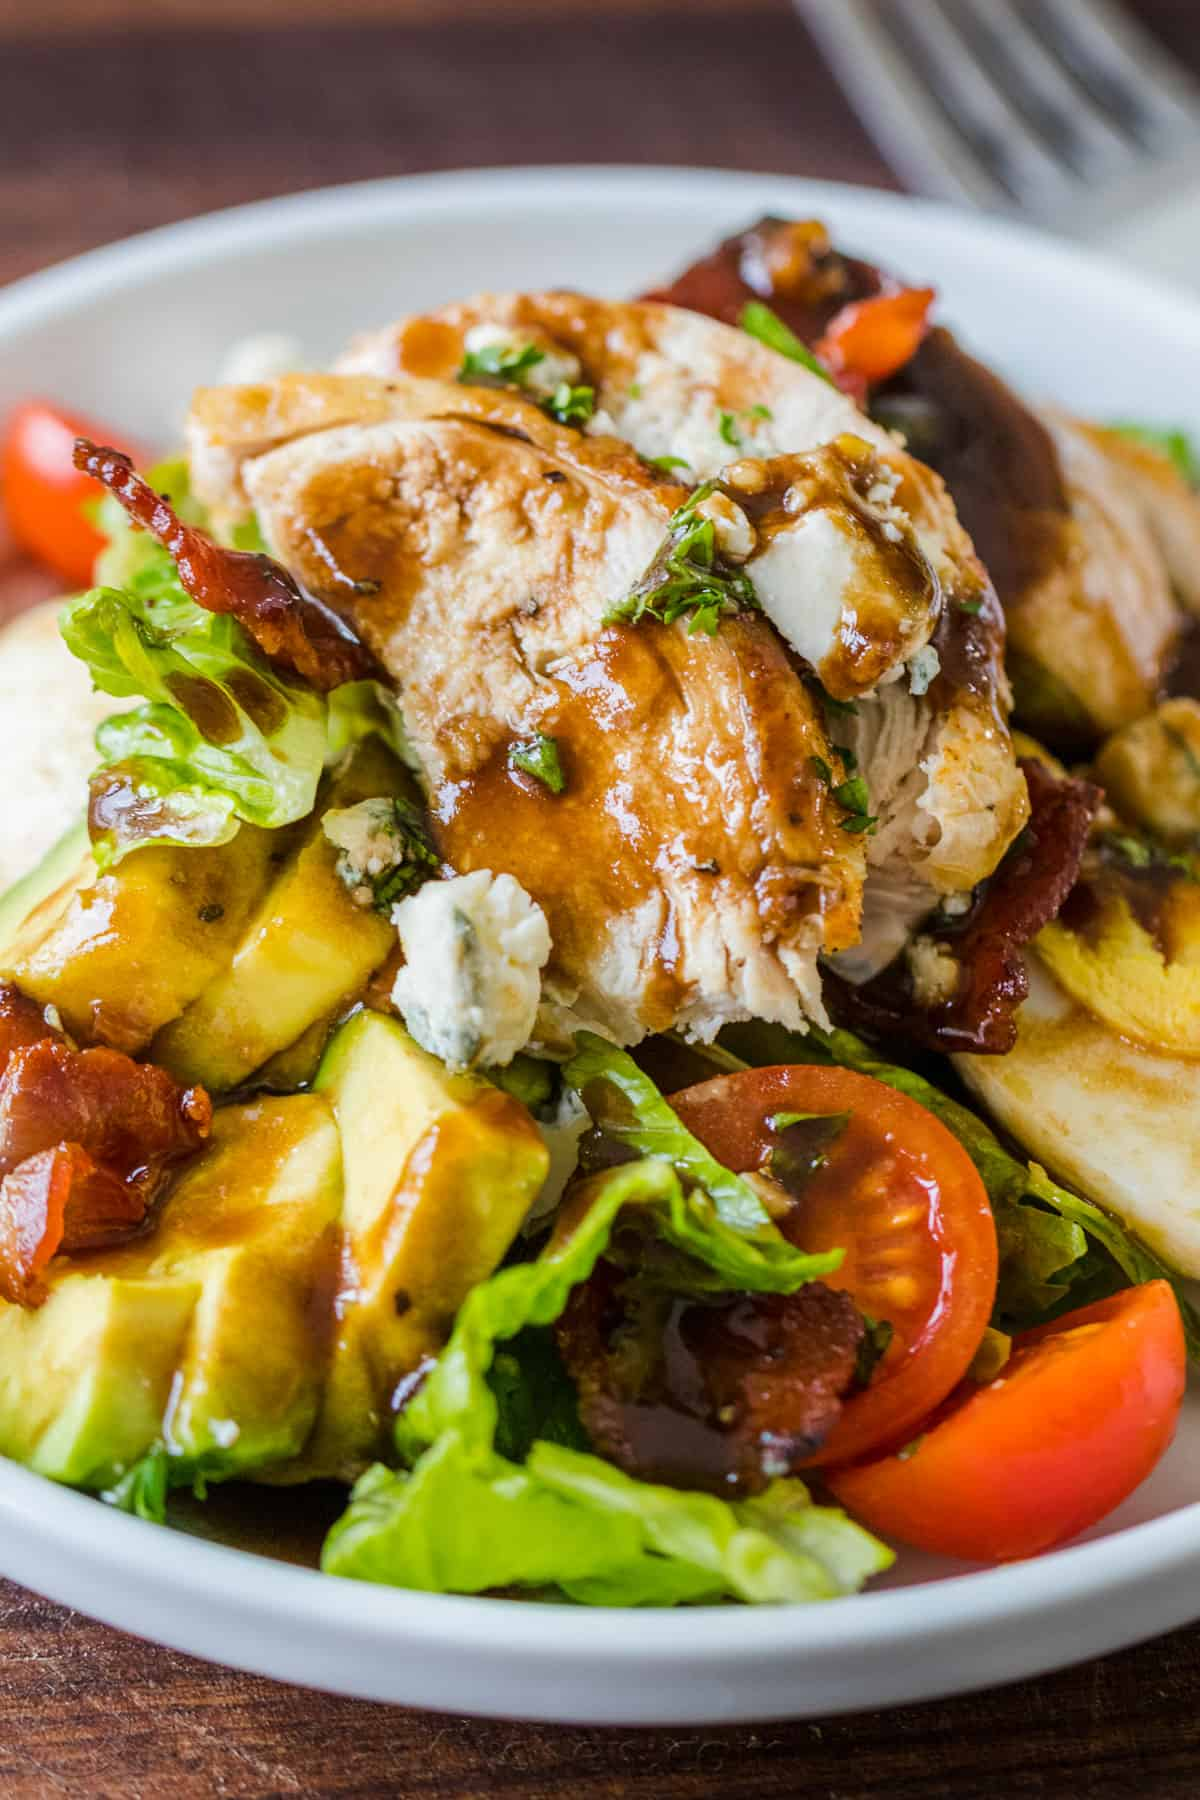 Cobb salad served on a plate with chicken and cobb salad dressing drizzled over the top